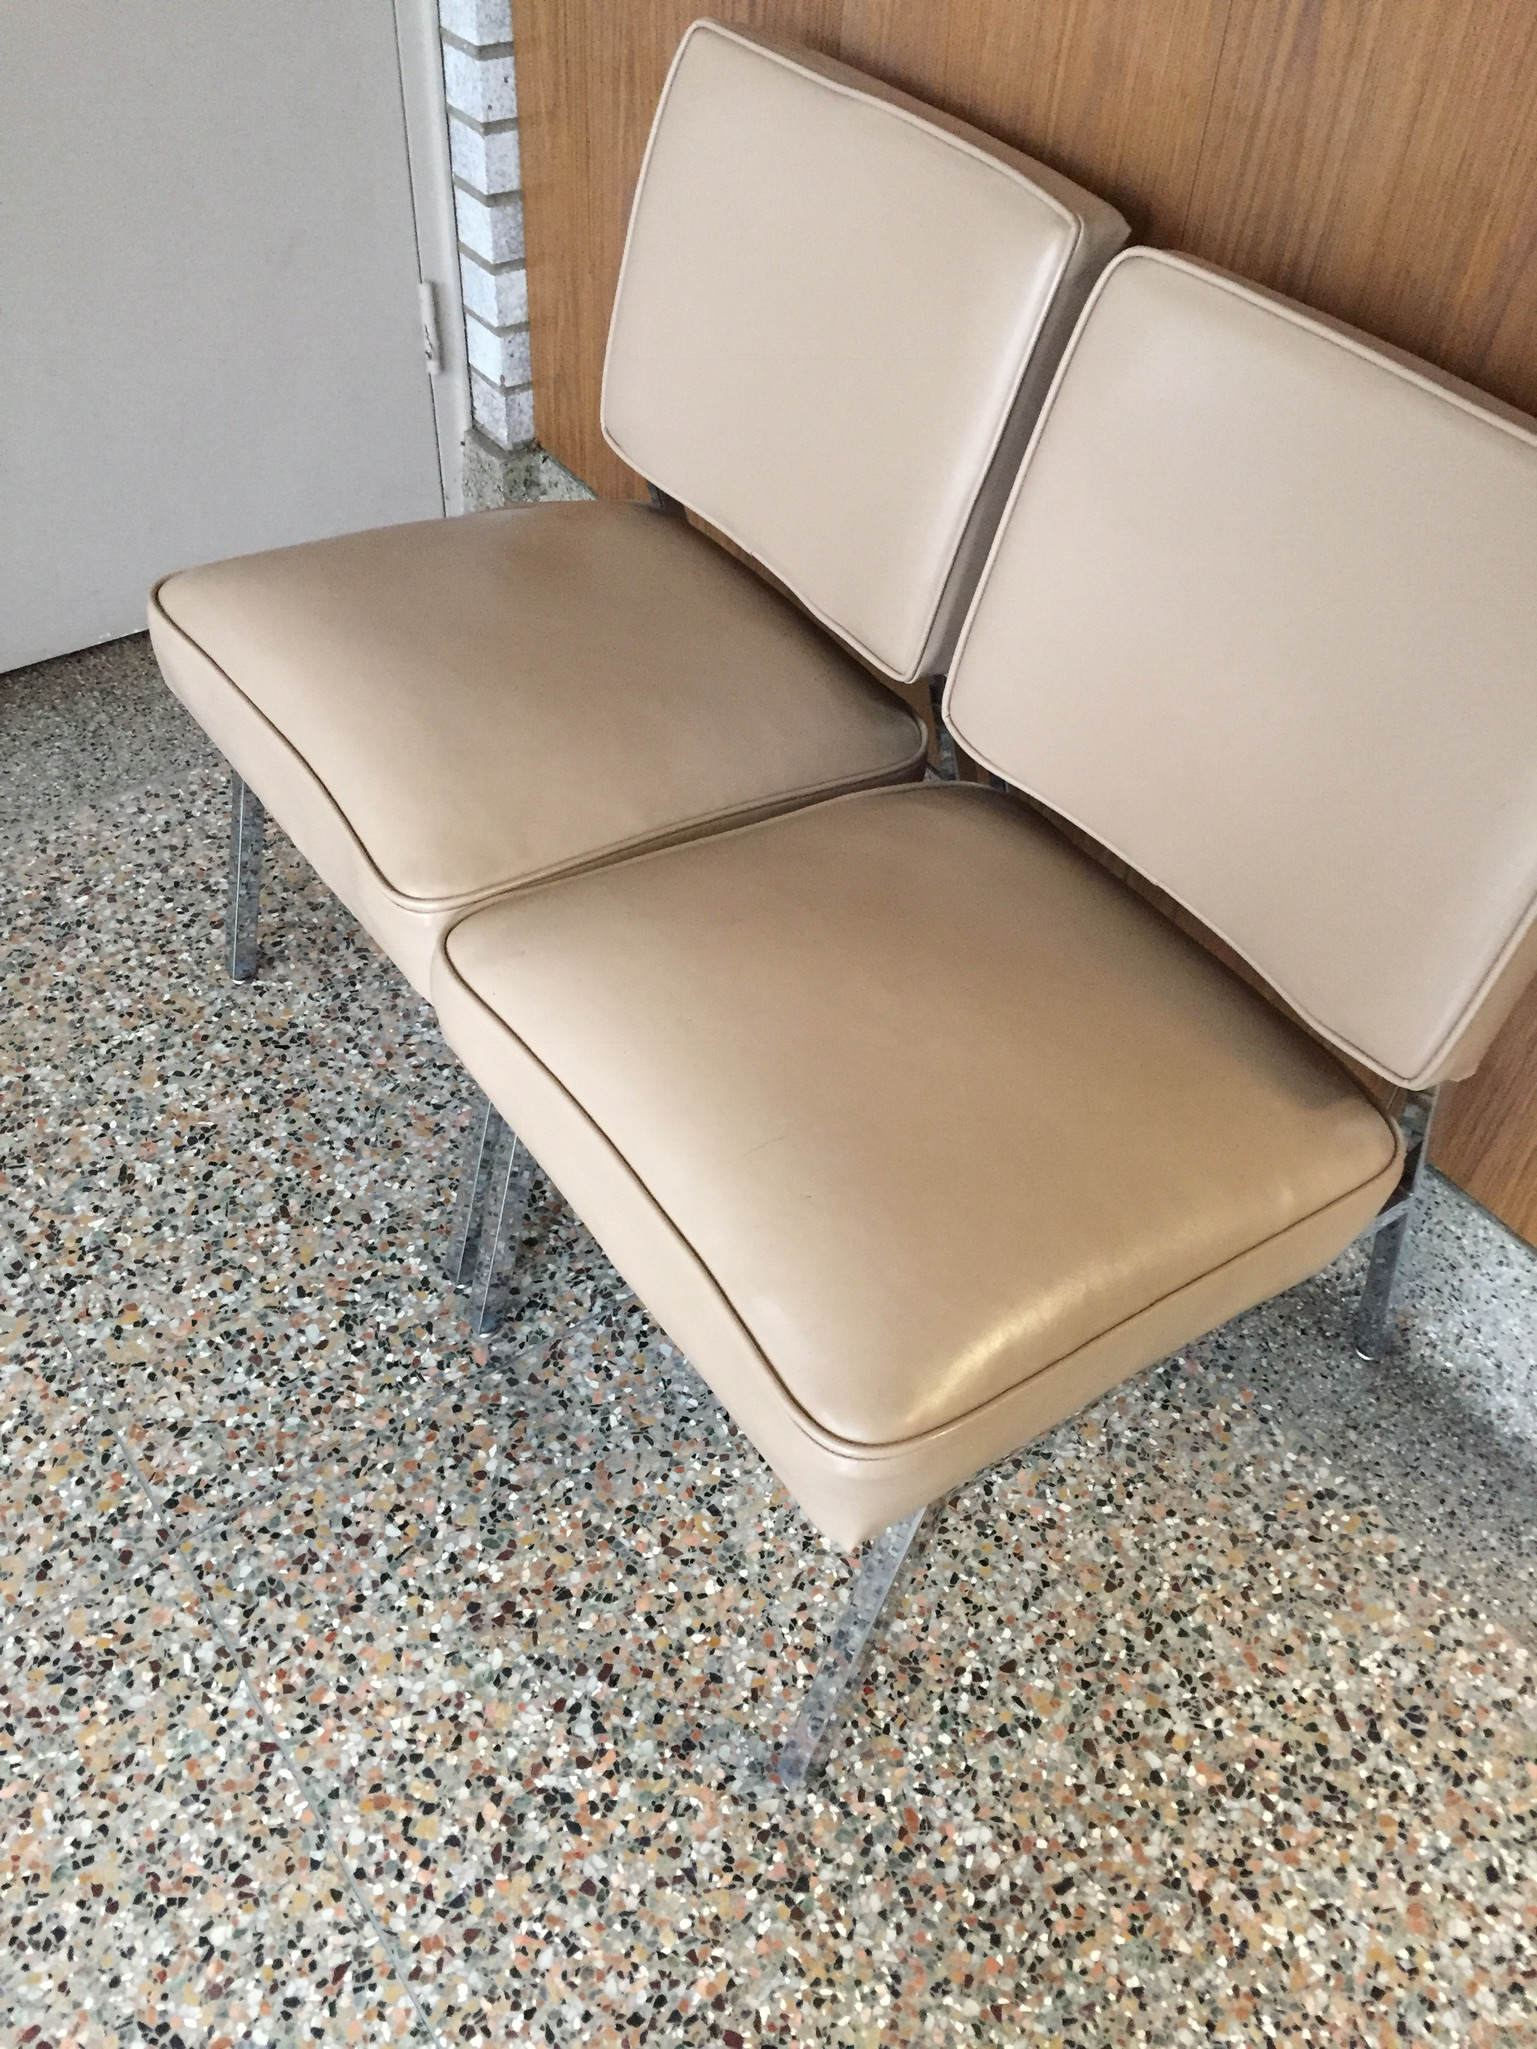 waiting room chairs for sale rubber chair rail vintage furniture veen